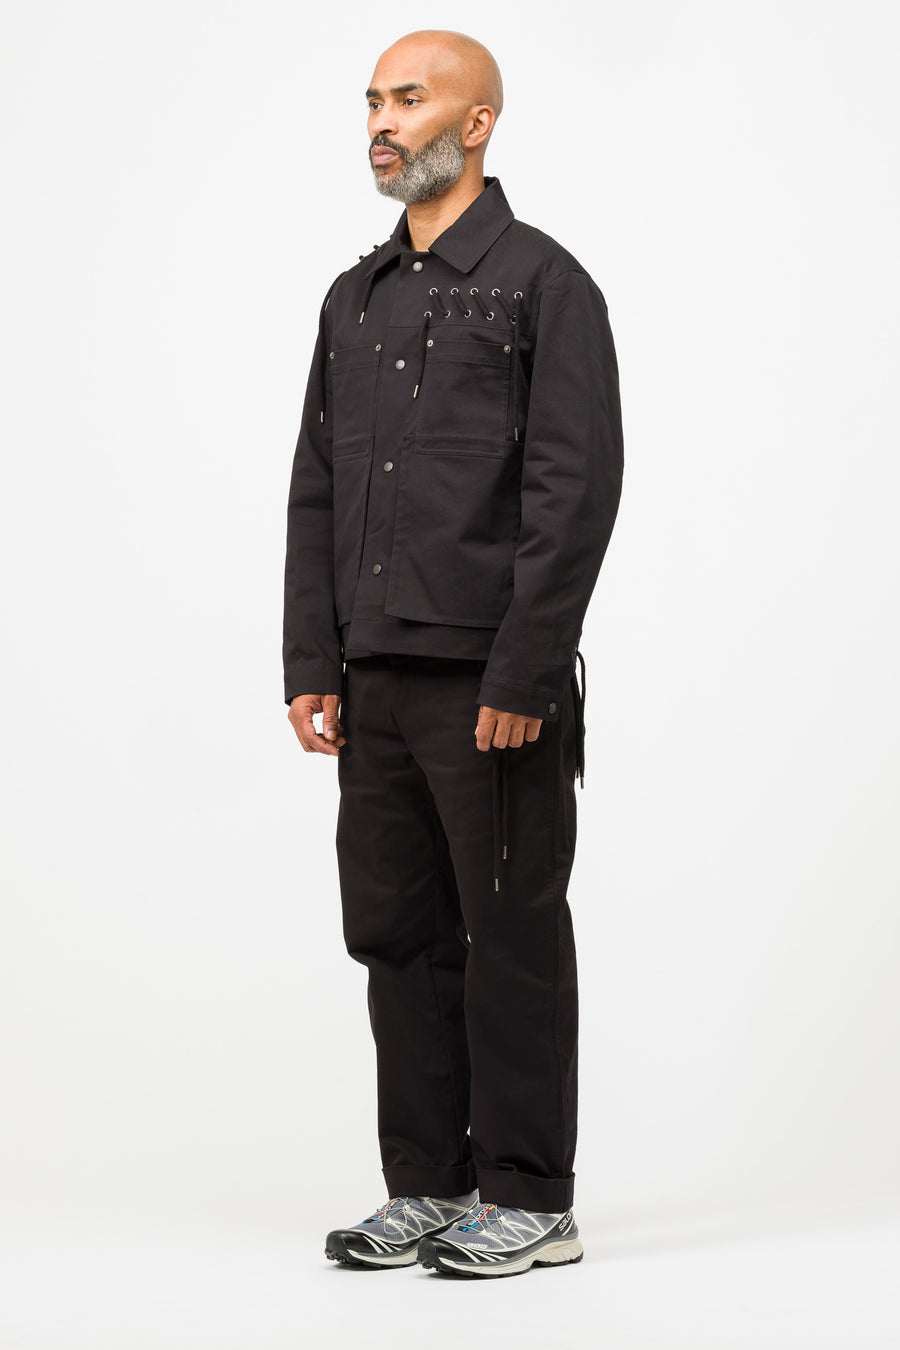 Craig Green Laced Worker Jacket in Black - Notre